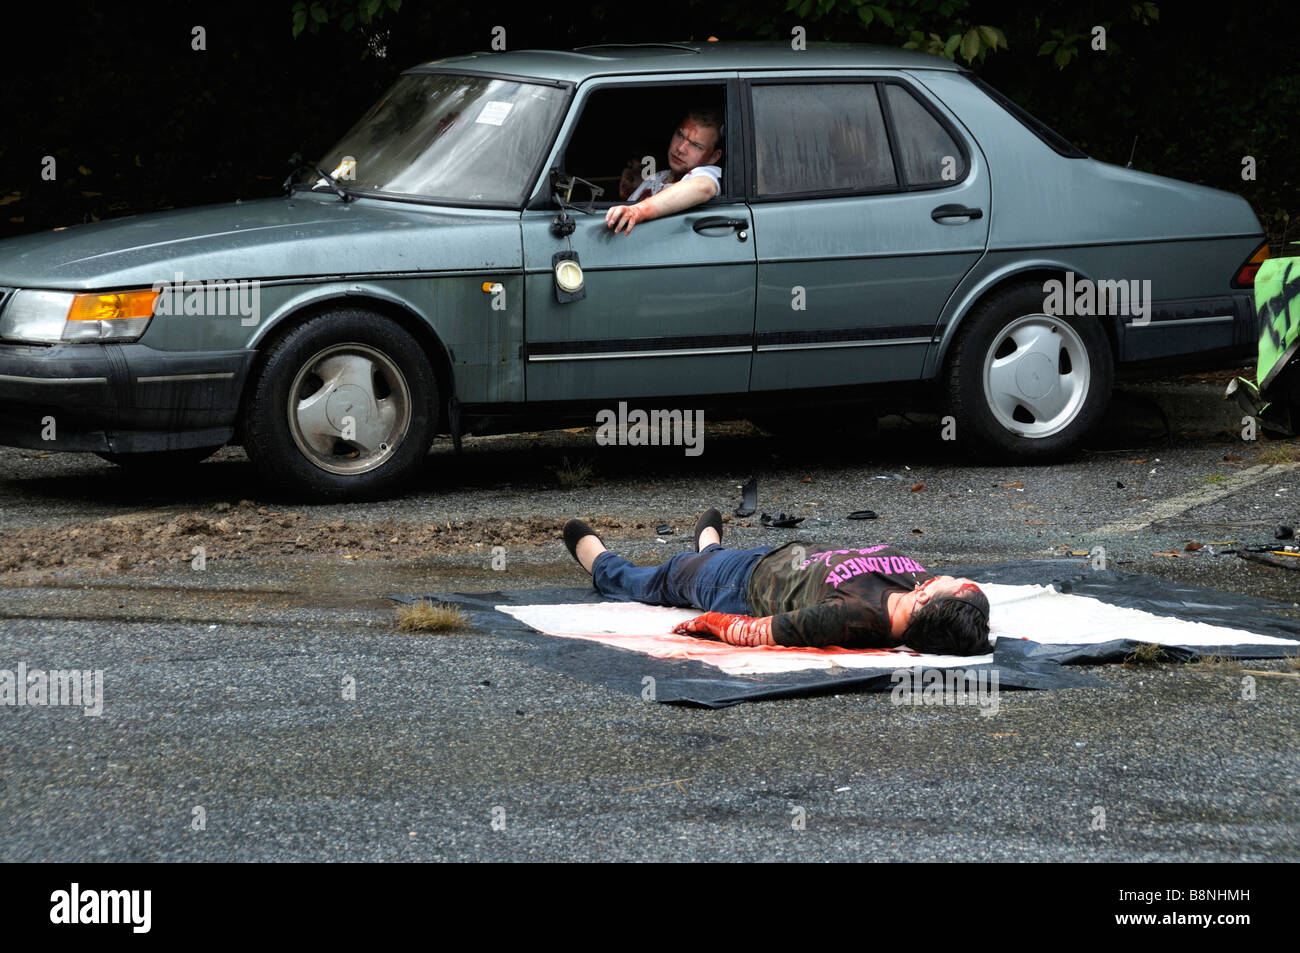 Reenactment of a severe accident scene where a girl was supposed to ...